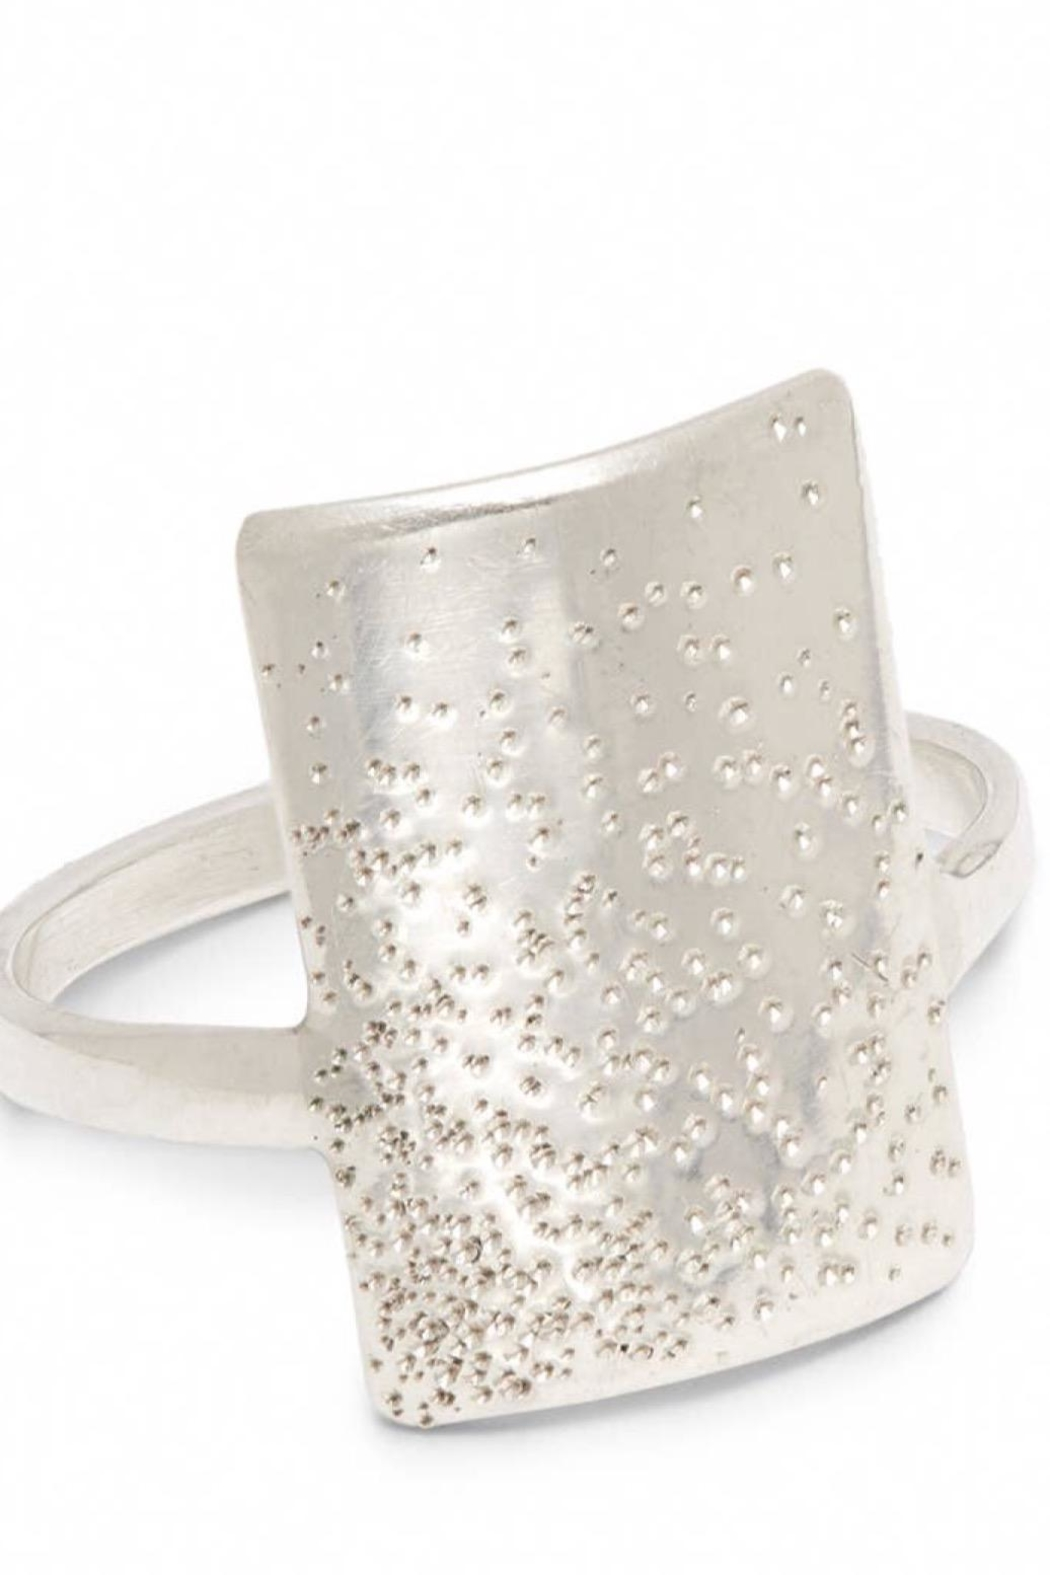 Christina Kober Designs Ever Long Diamond Dusted Ring - Main Image